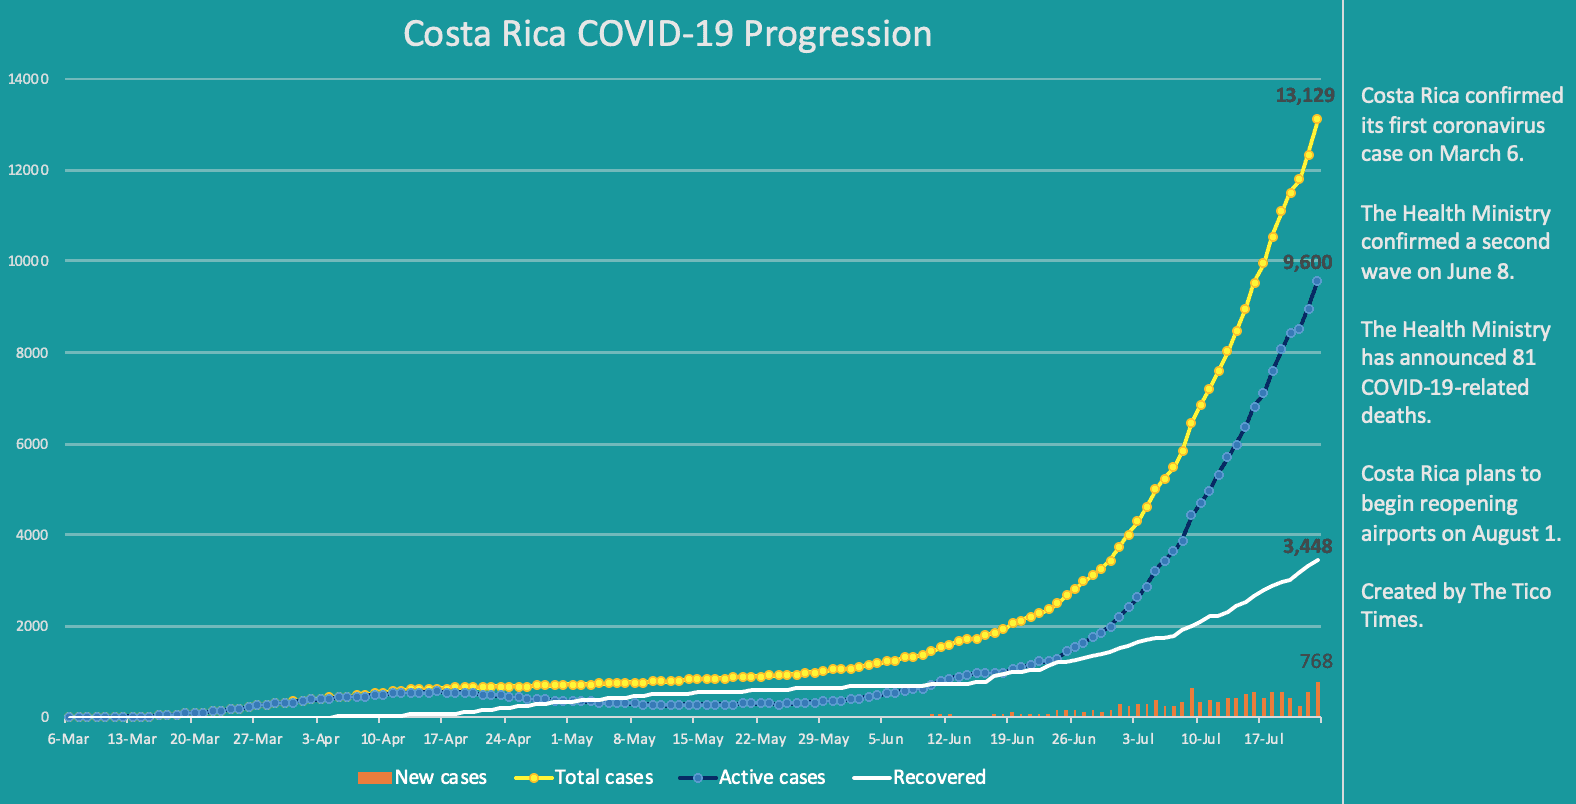 Costa Rica coronavirus data on July 23, 2020